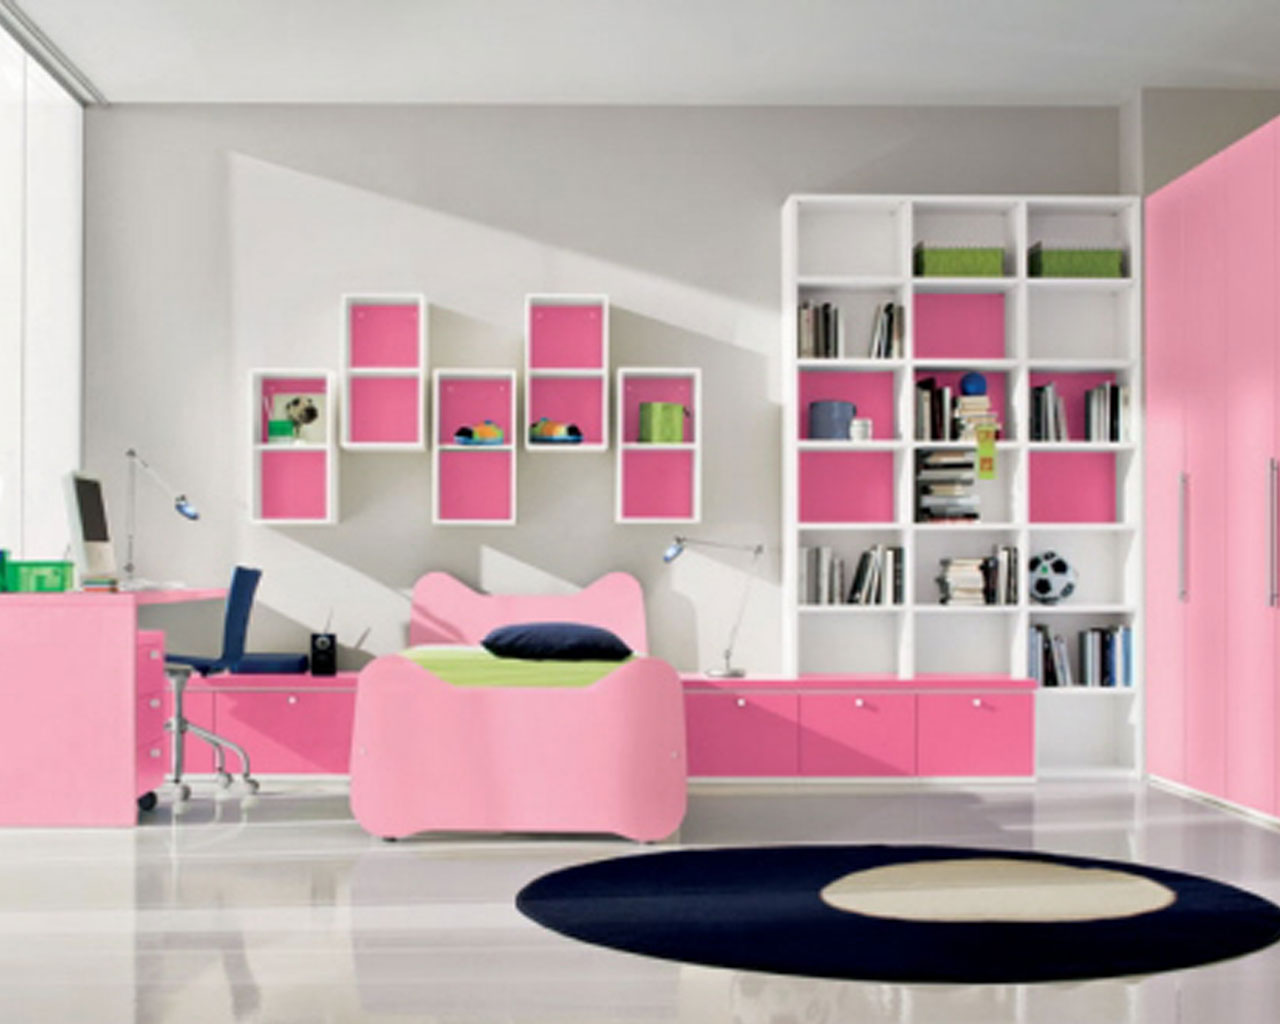 how do decor colors affect our emotions the psychological effect of pink room